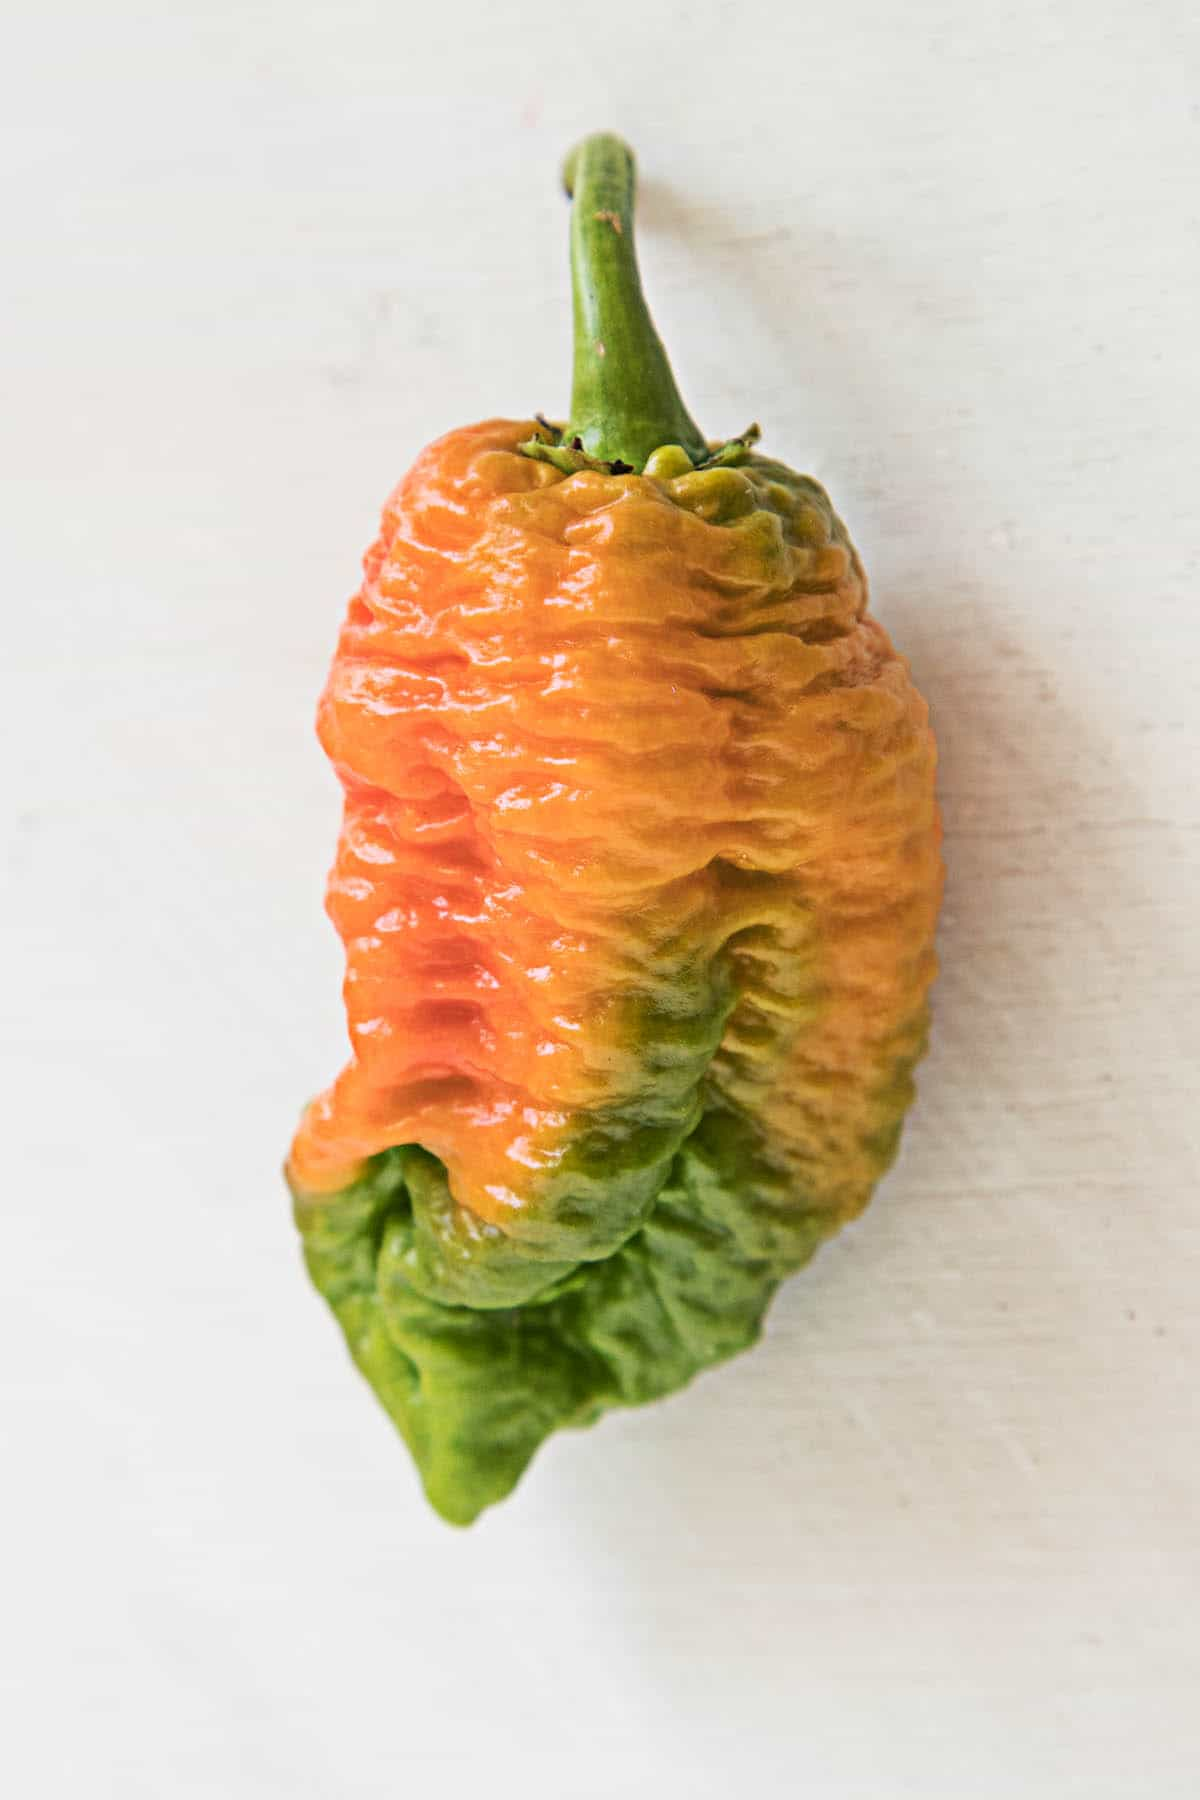 Brain Strain Chili Pepper - One of the Hottest Chili Peppers in the World